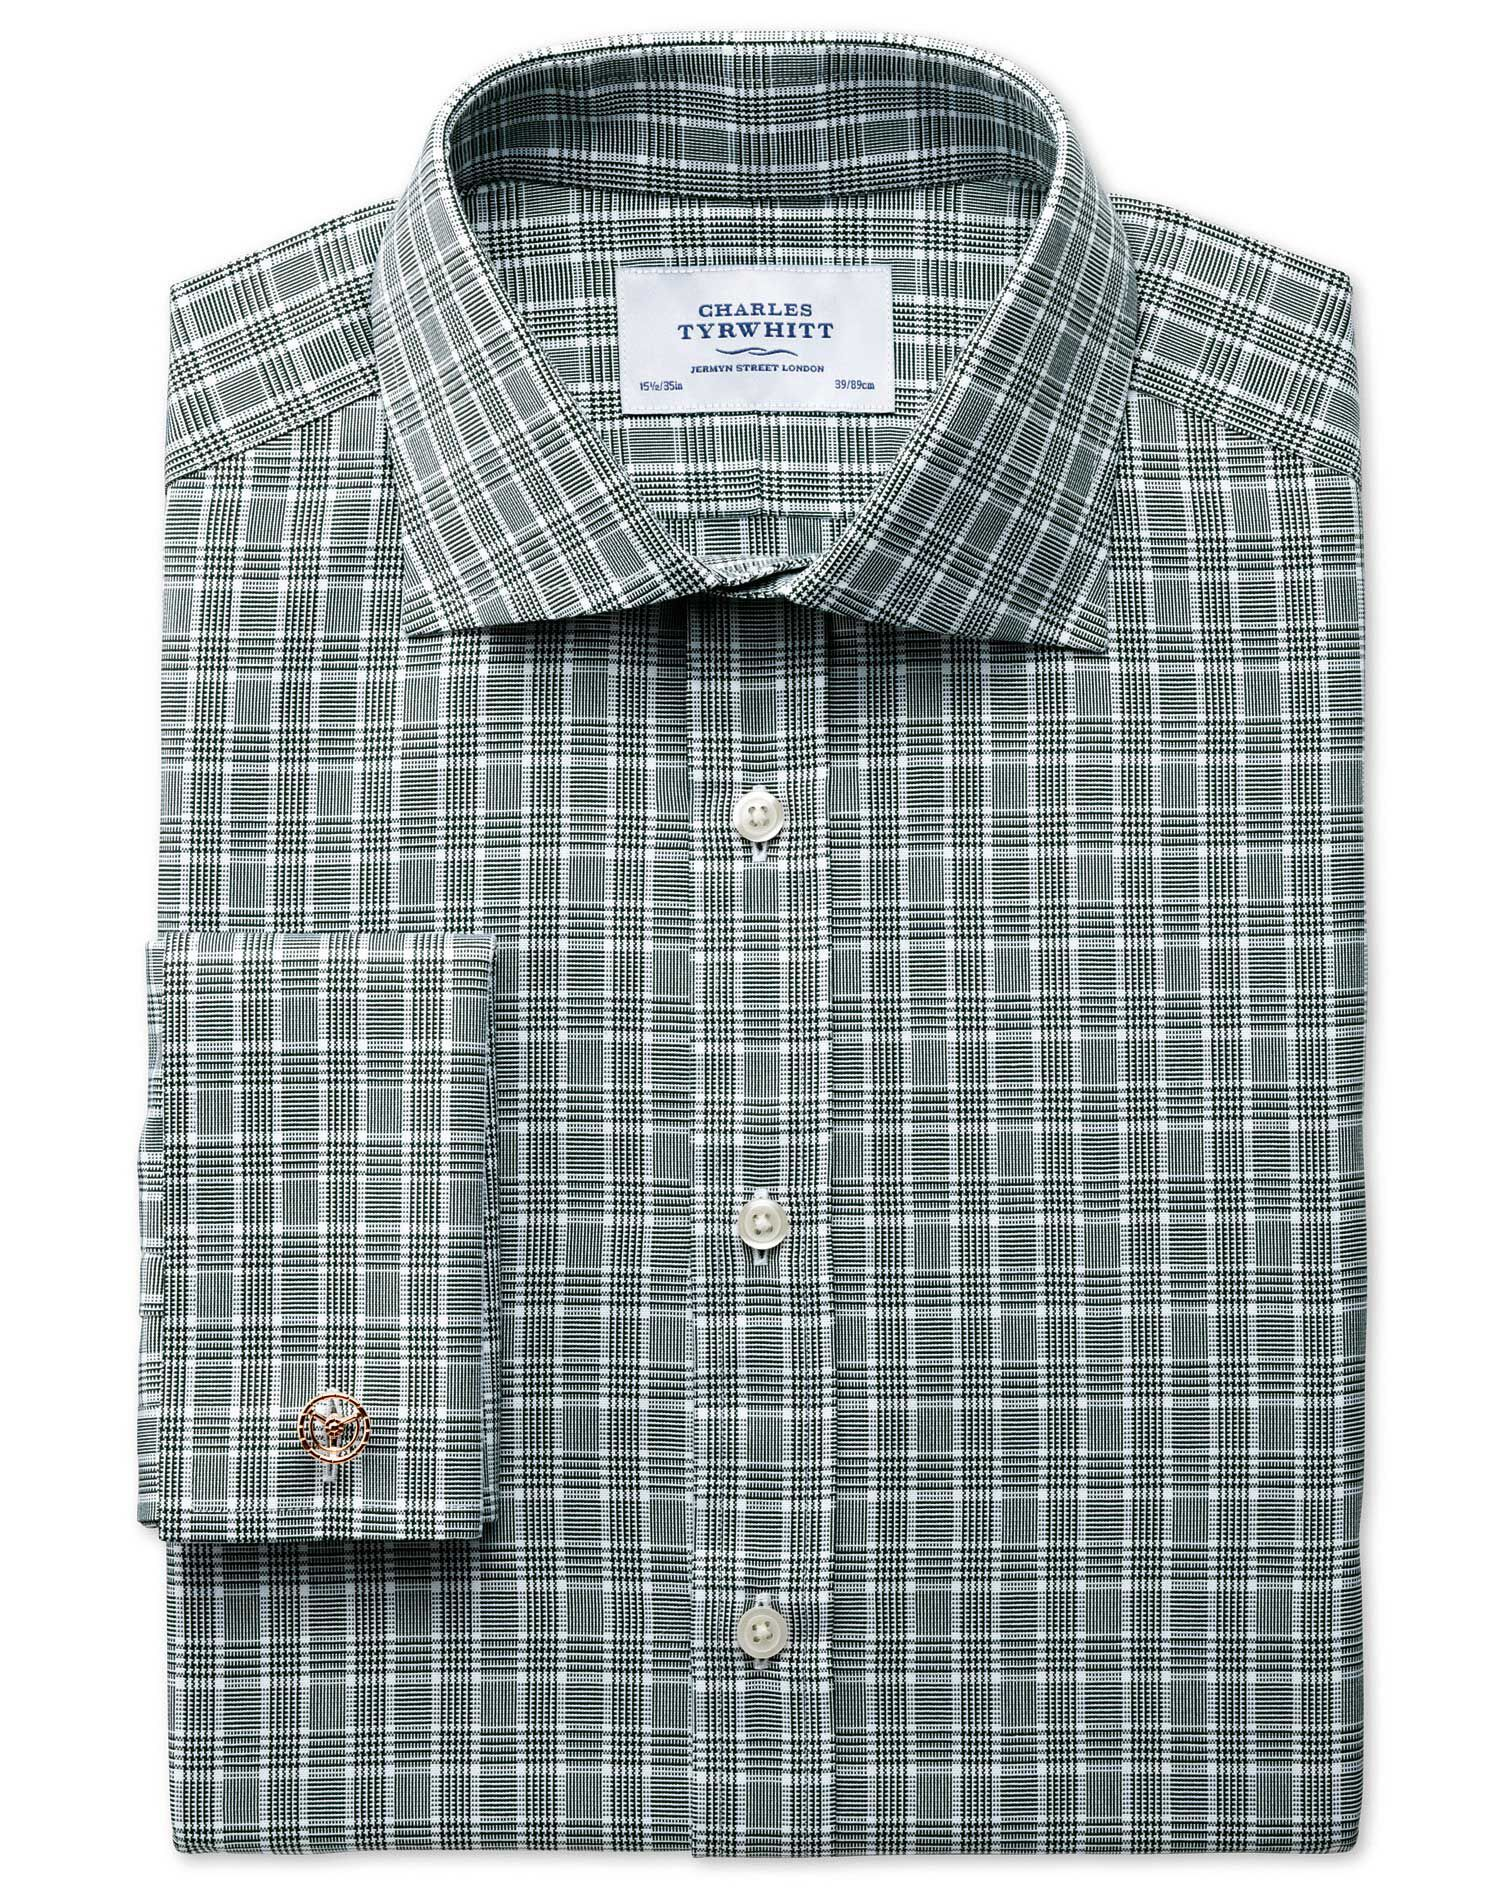 Classic Fit Prince Of Wales Green Cotton Formal Shirt Double Cuff Size 15.5/36 by Charles Tyrwhitt